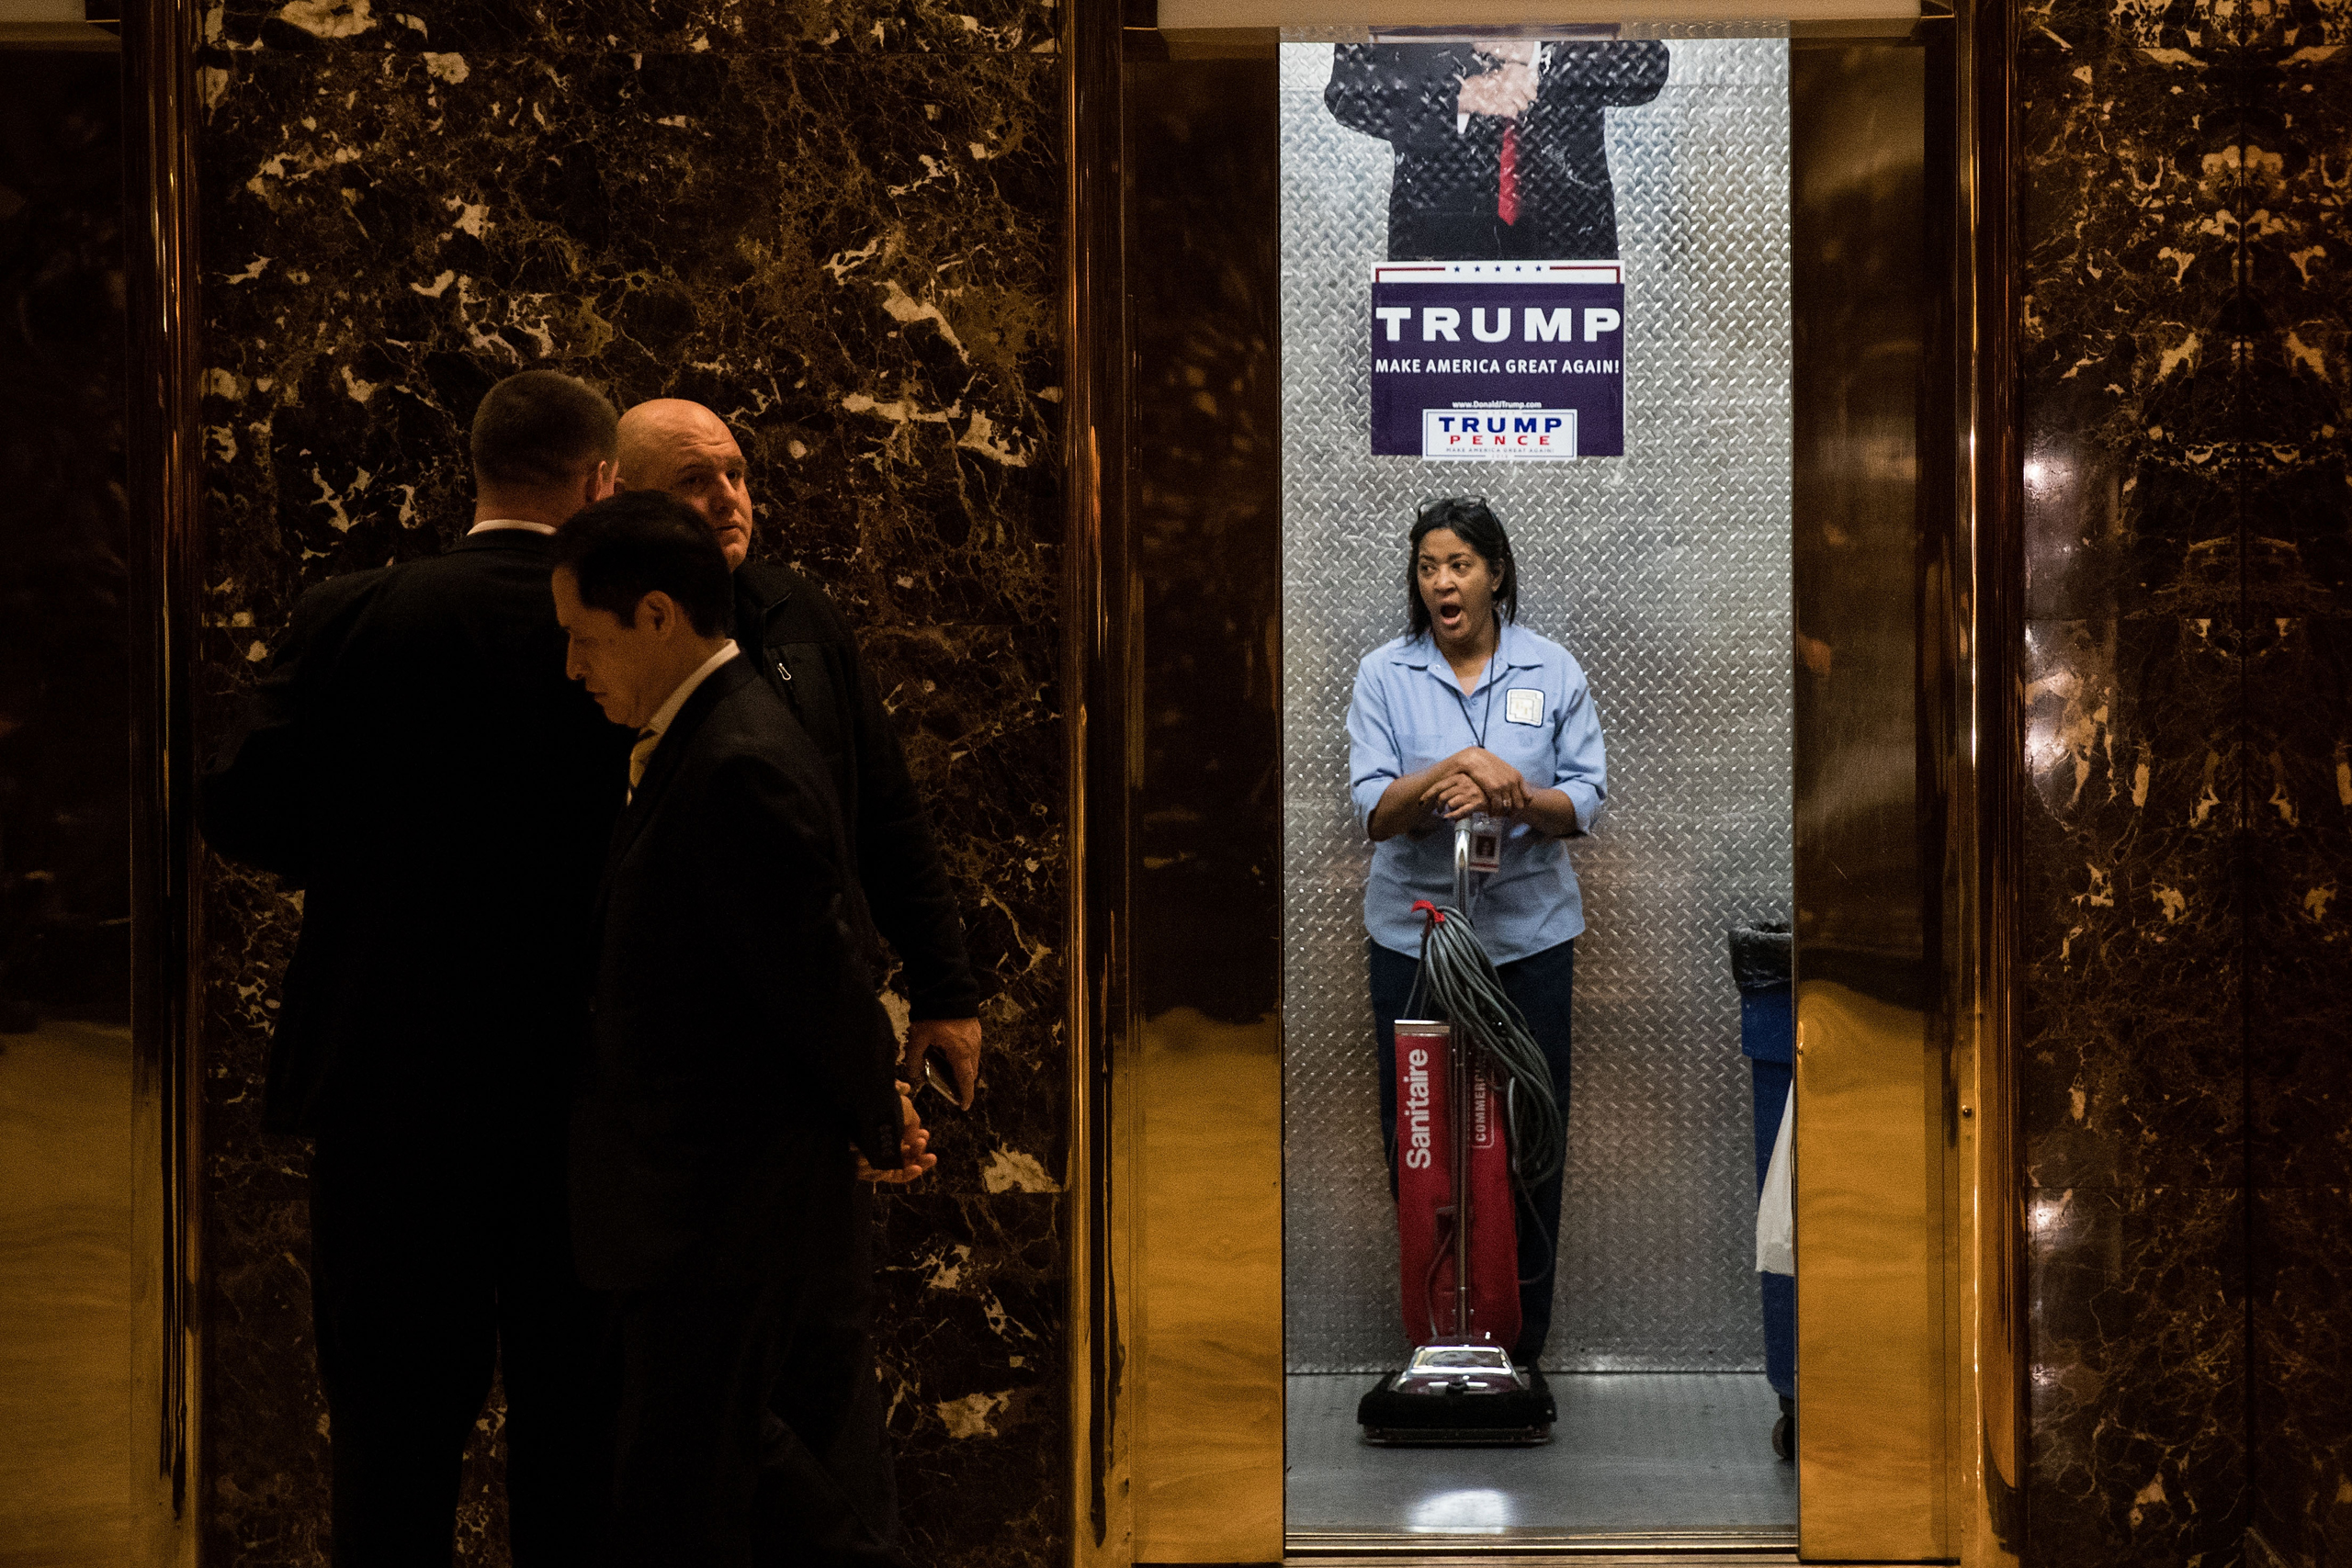 A maintenance worker yawns as she stands in an elevator in the lobby at Trump Tower, on Nov. 14, 2016.